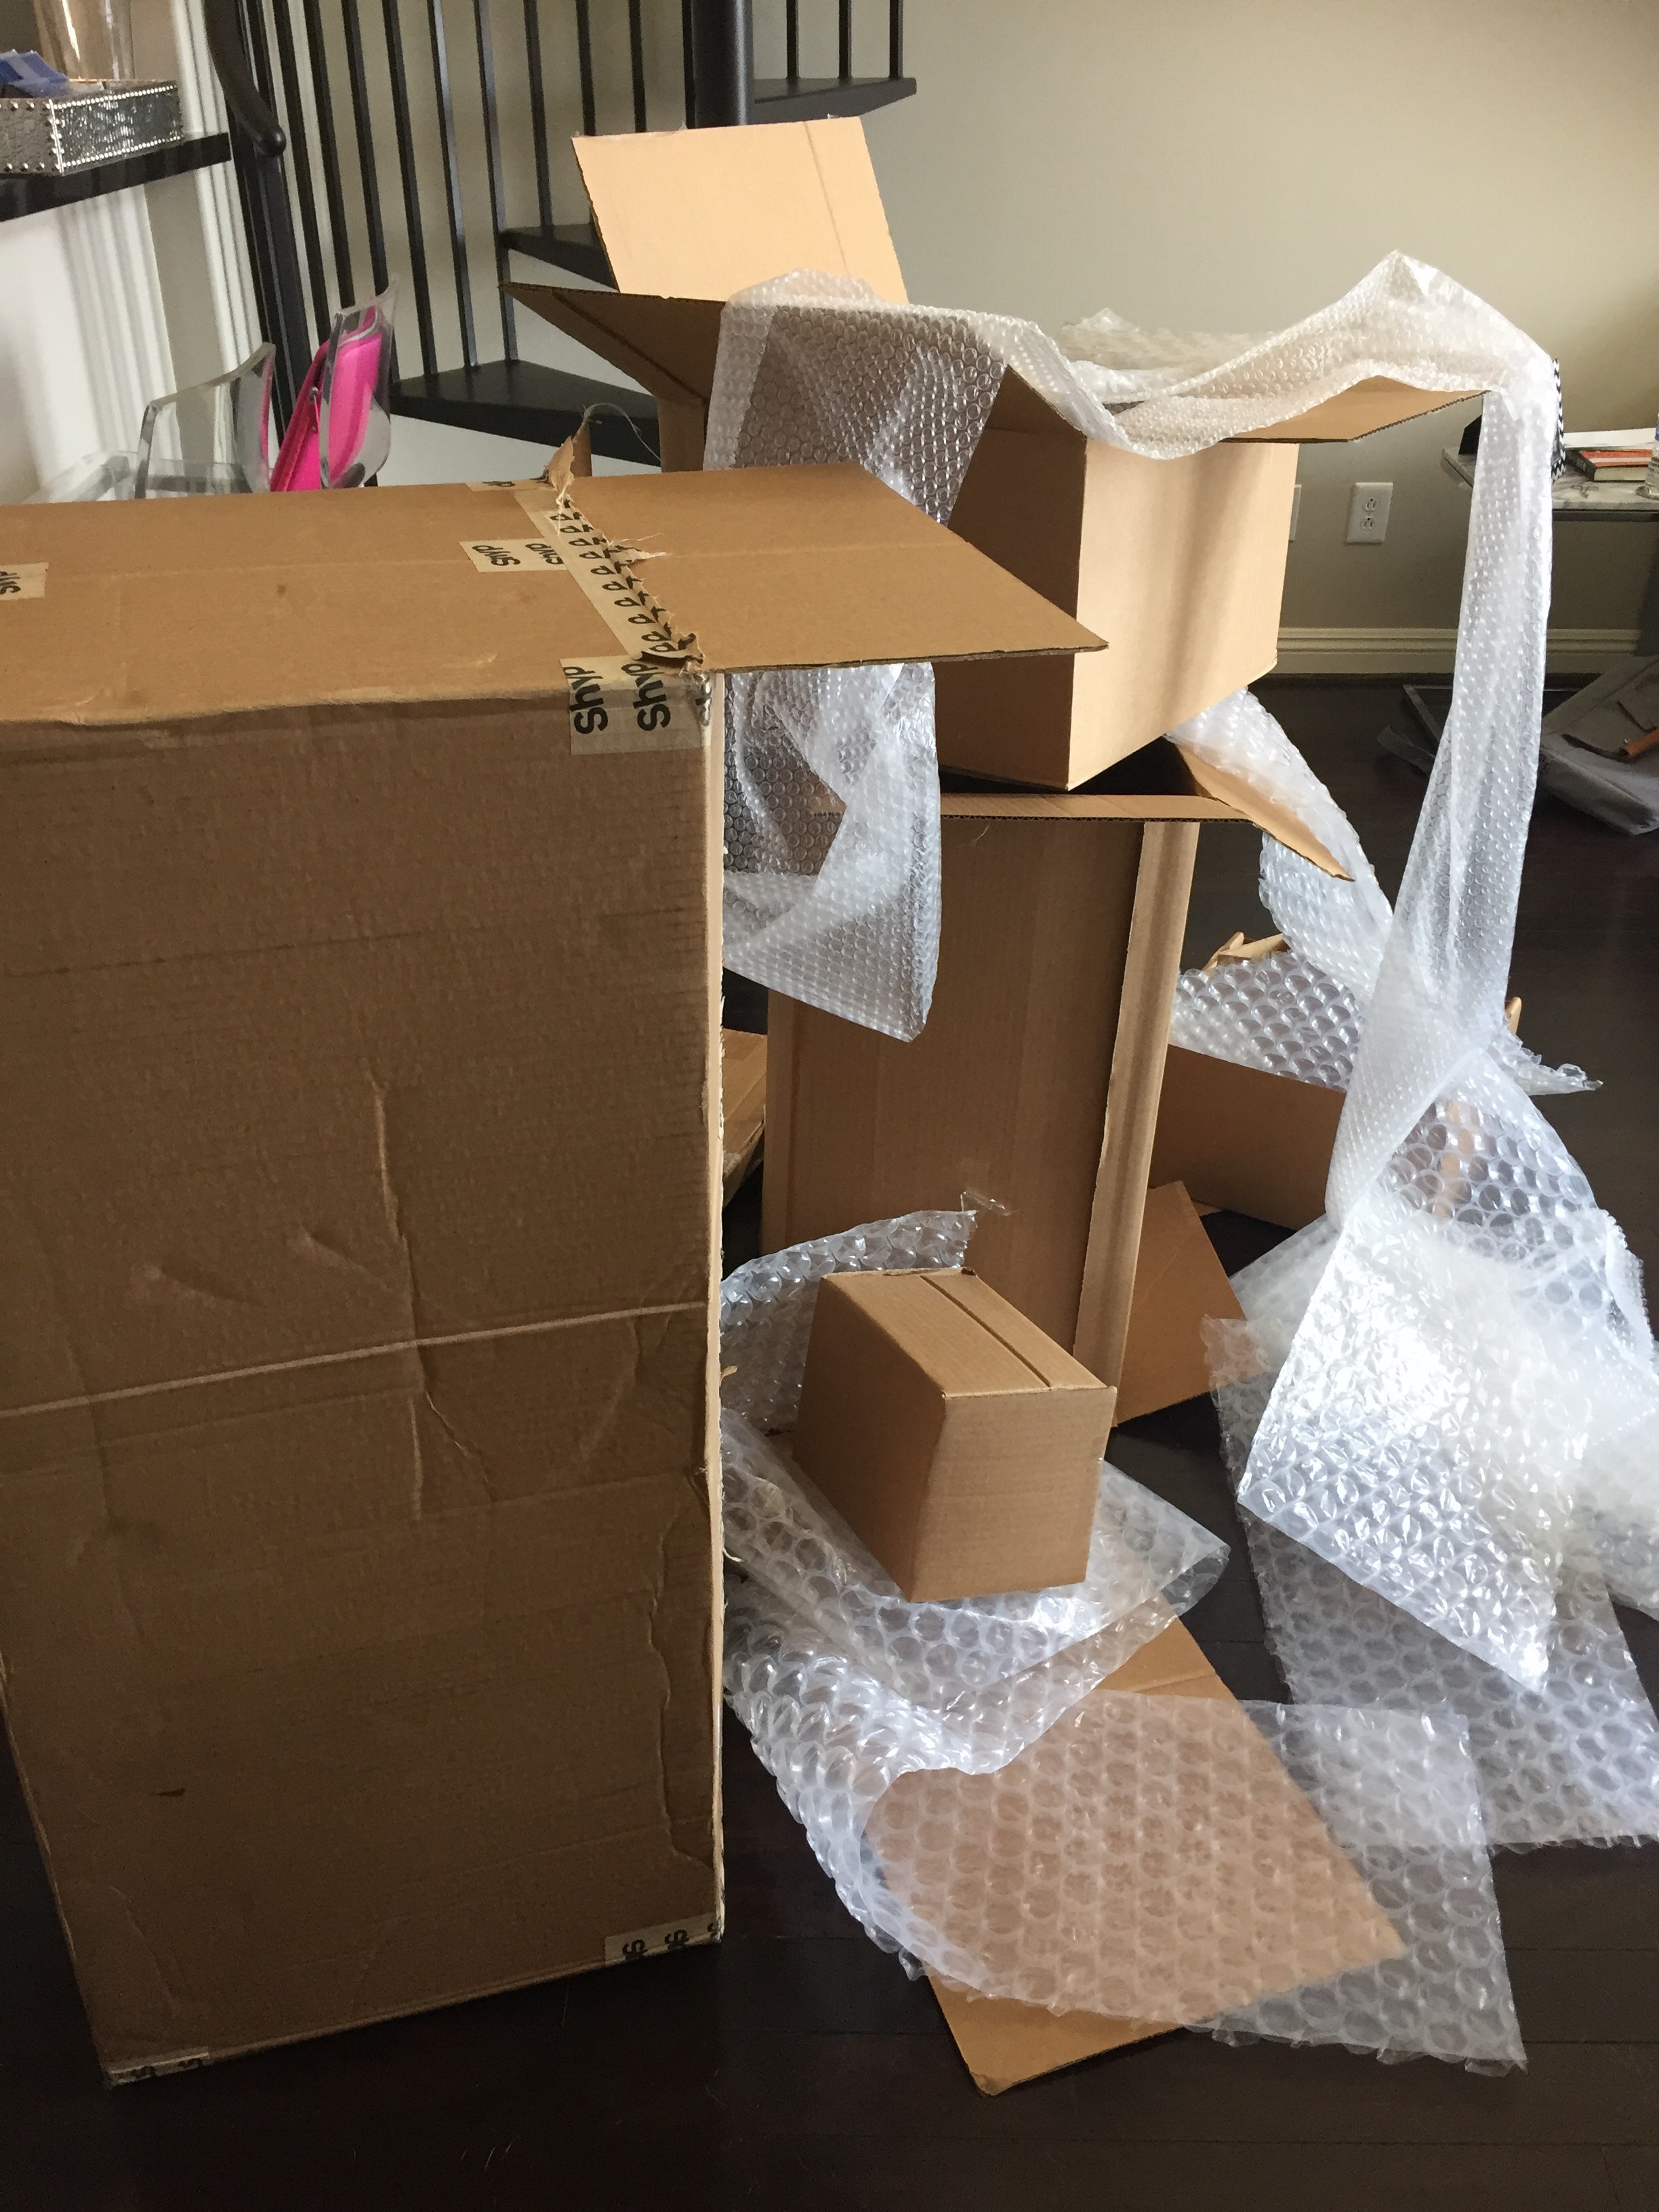 Shyp is serious about packaging!